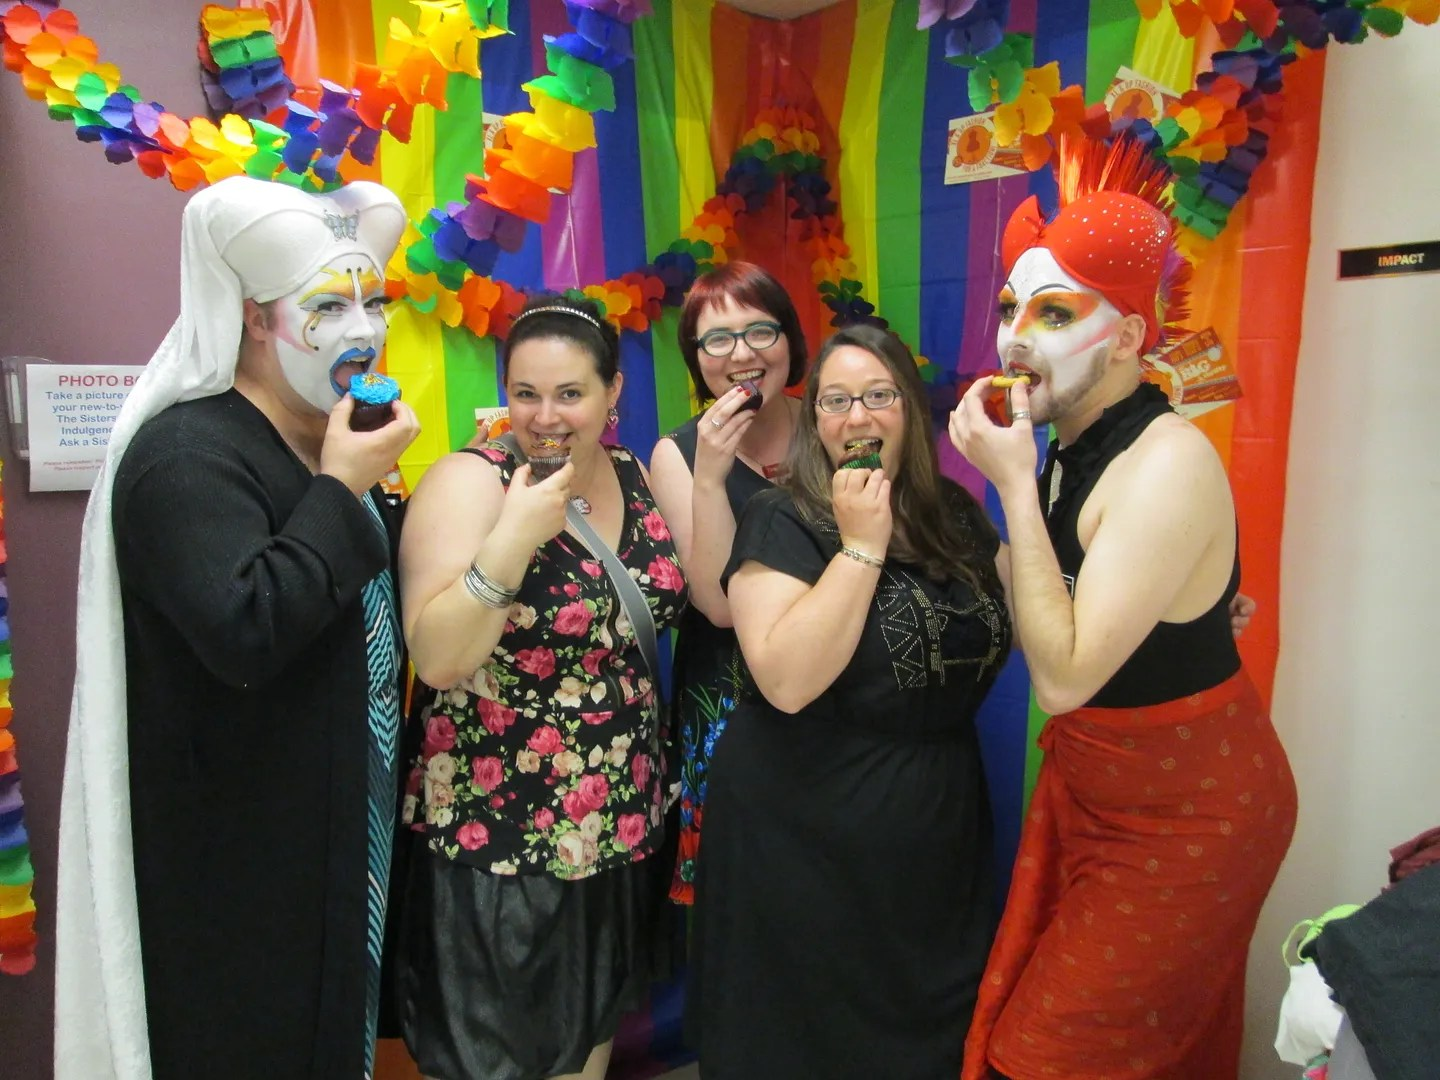 group of women and queer nuns eating cupcakes in rainbow photobooth